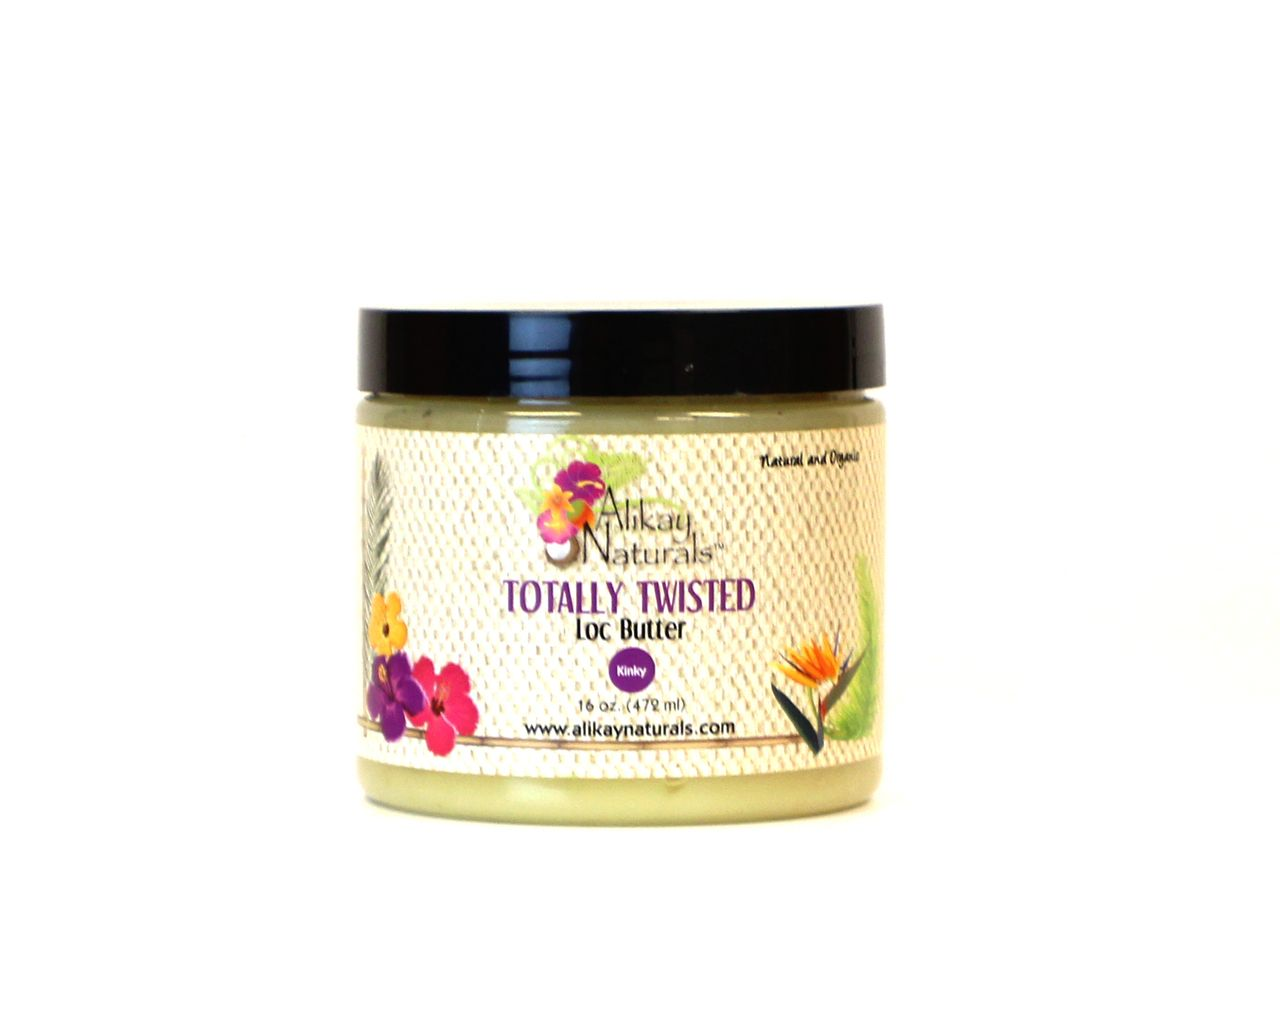 Alikay Naturals - Totally Twisted Loc Butter, $16.00 (http://alikaynaturals.com/totally-twisted-loc-butter/)